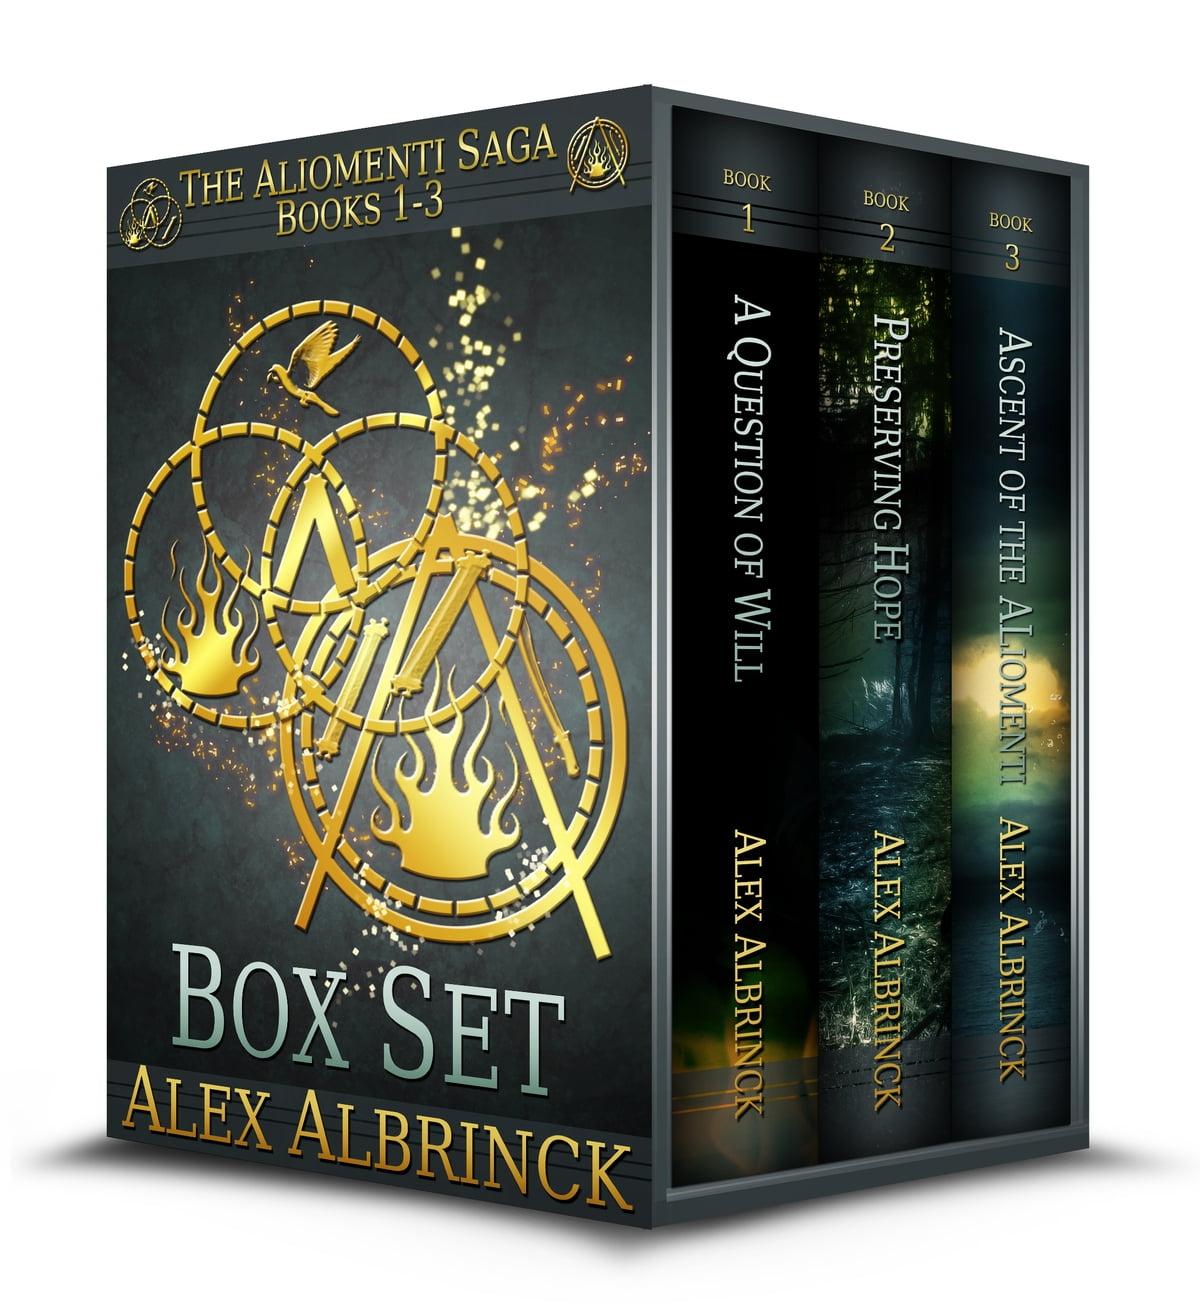 The Aliomenti Saga Box Set Ebook By Alex Albrinck  1230000197659  Rakuten  Kobo